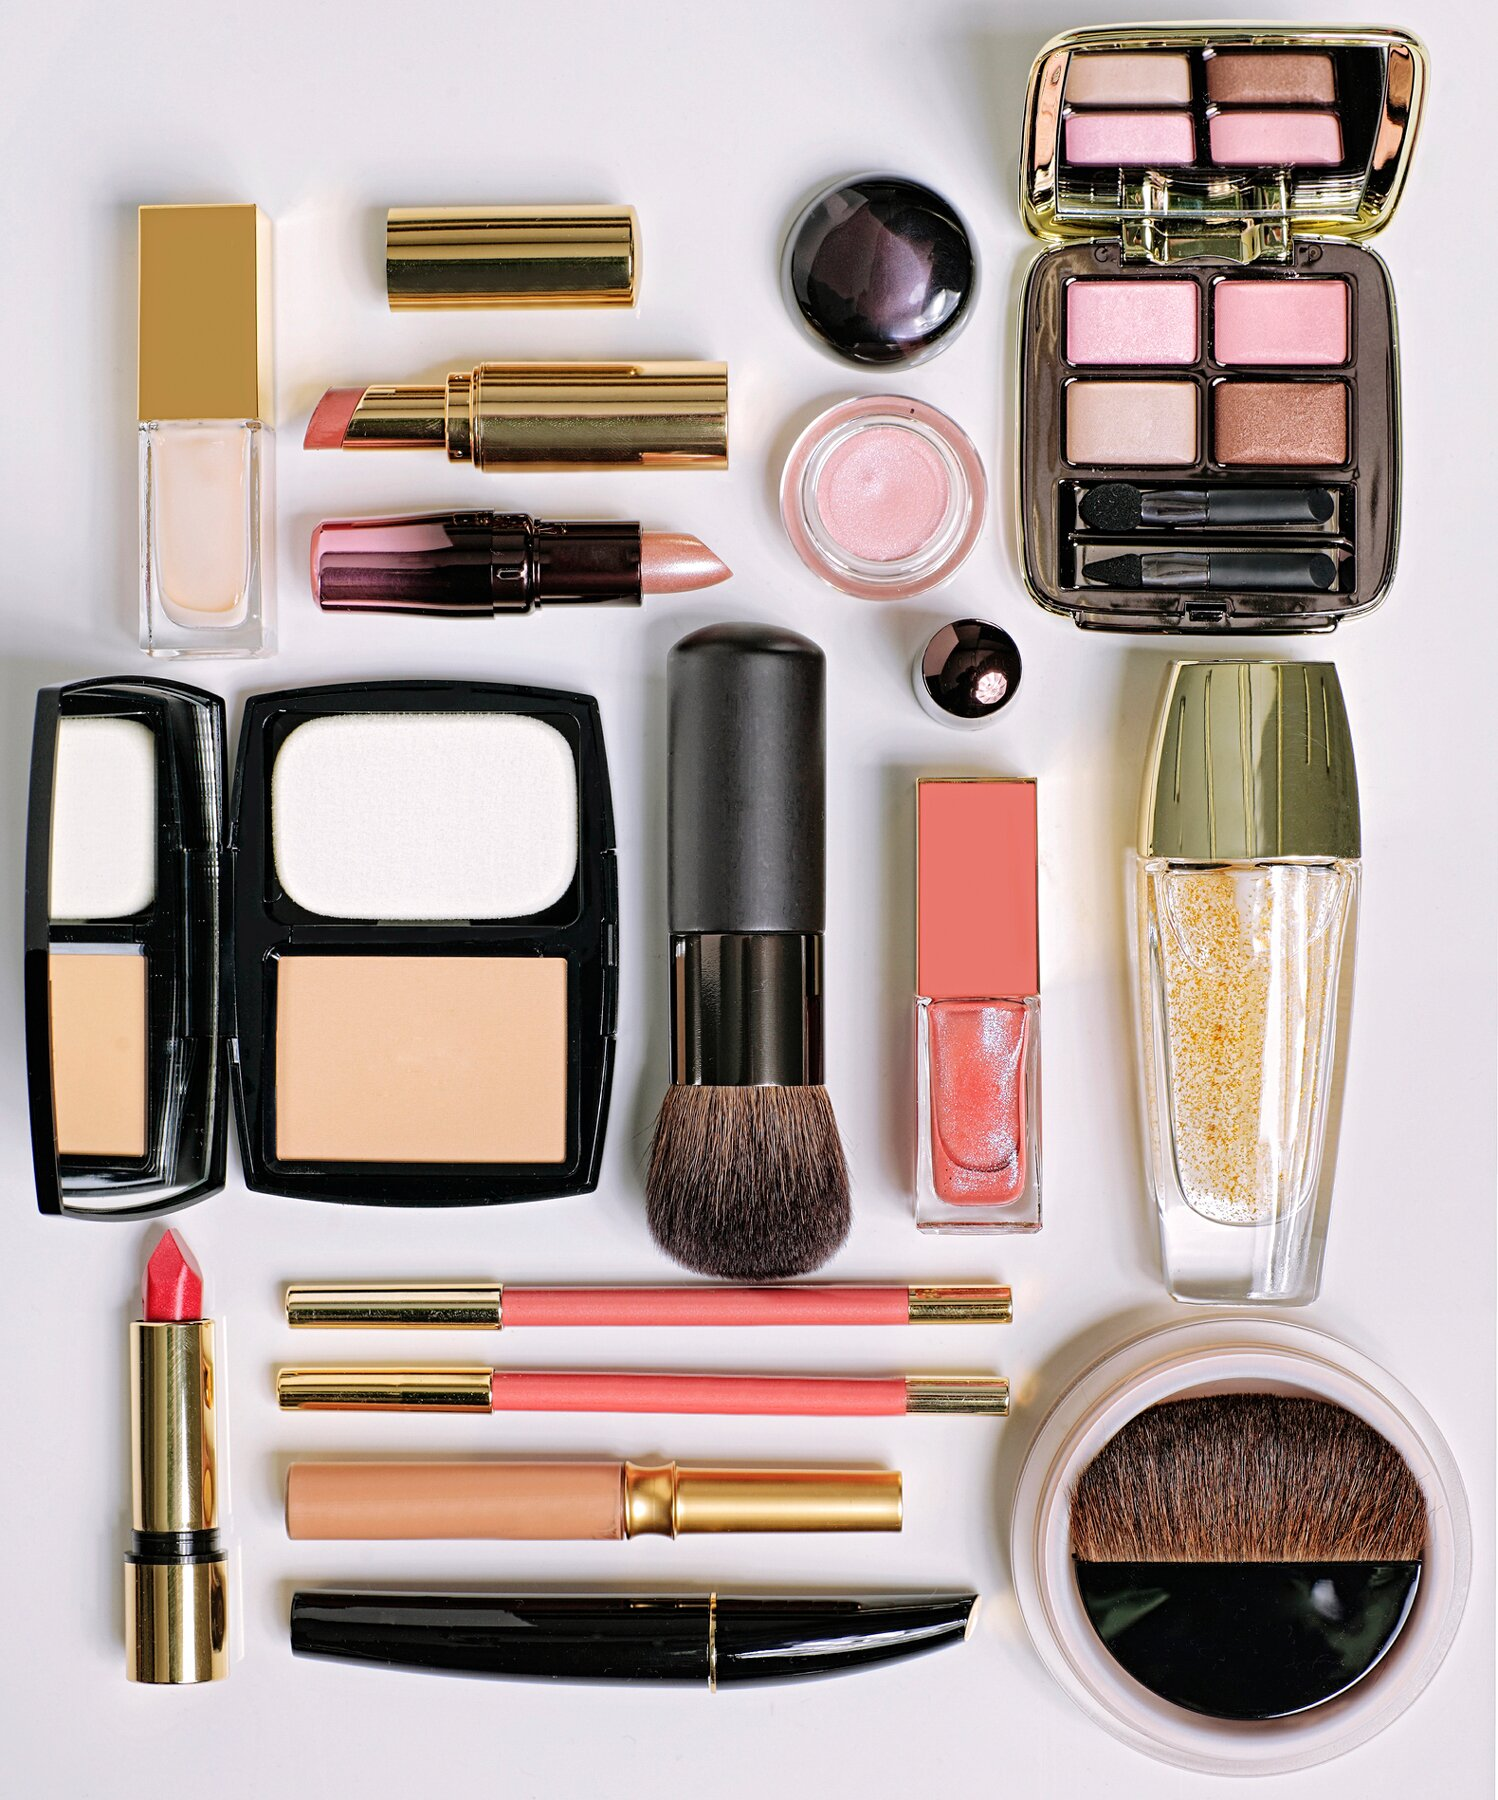 201ebe72a2 How to Organize Your Beauty Products